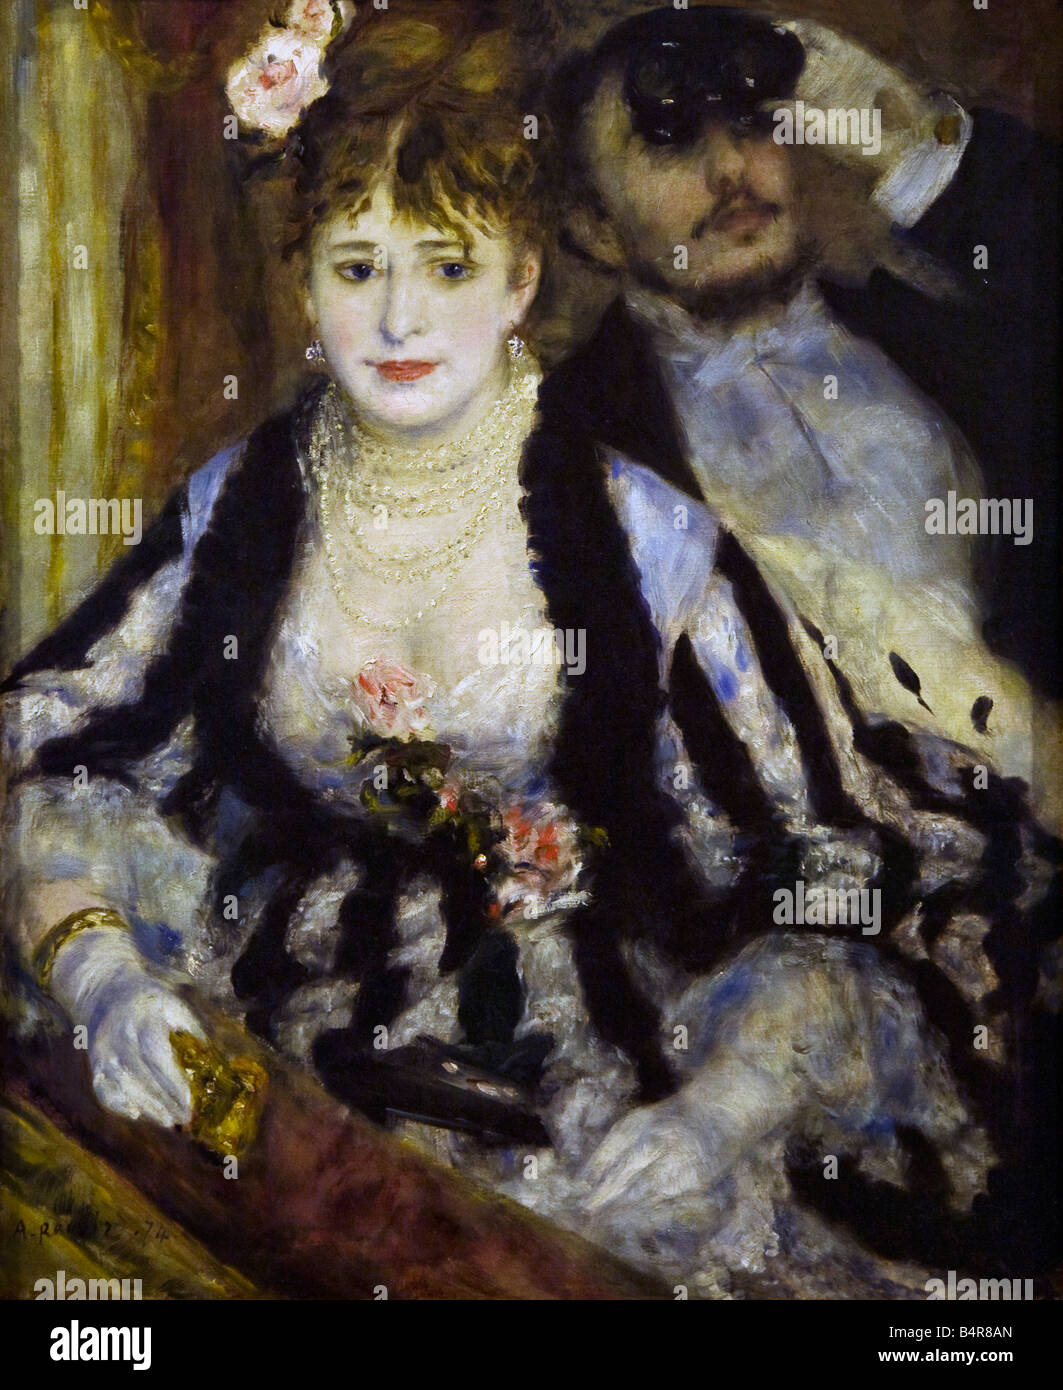 La Loge painted by Pierre-Auguste Renoir oil on canvas 1874 Courtauld Institute Gallery Somerset House London England - Stock Image